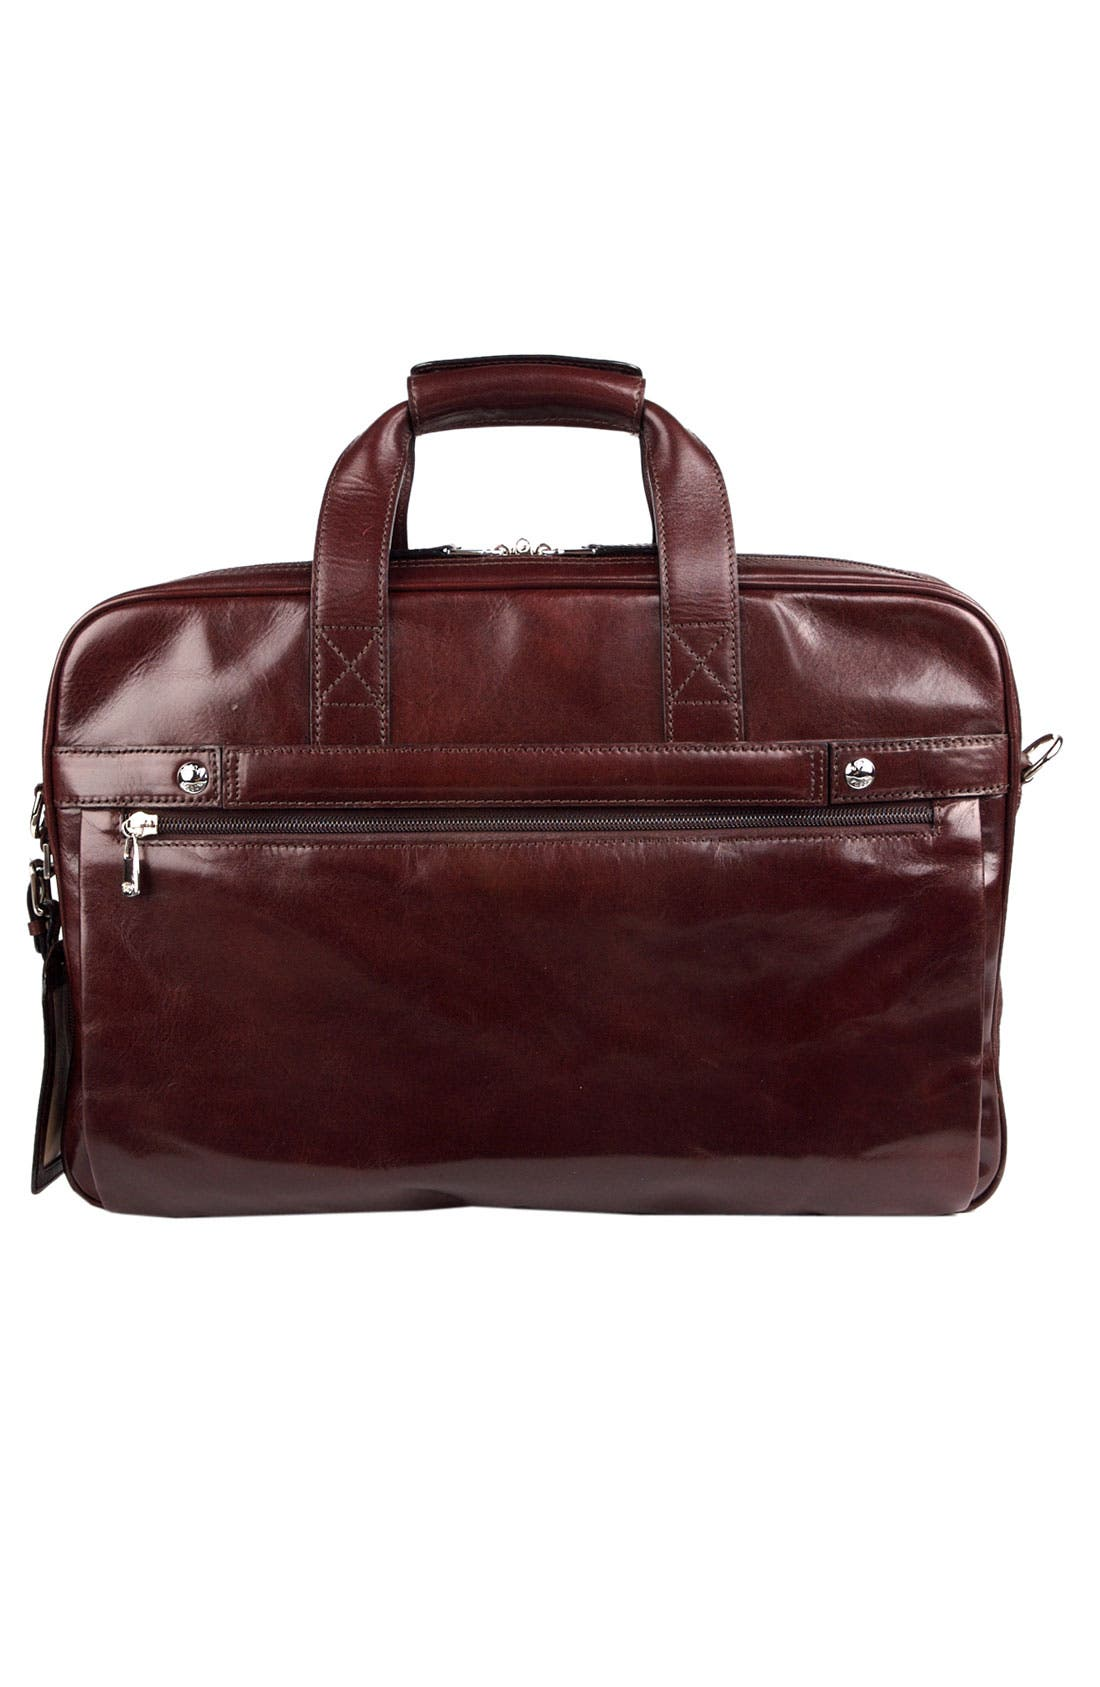 Double Compartment Leather Briefcase,                             Alternate thumbnail 2, color,                             Dark Brown